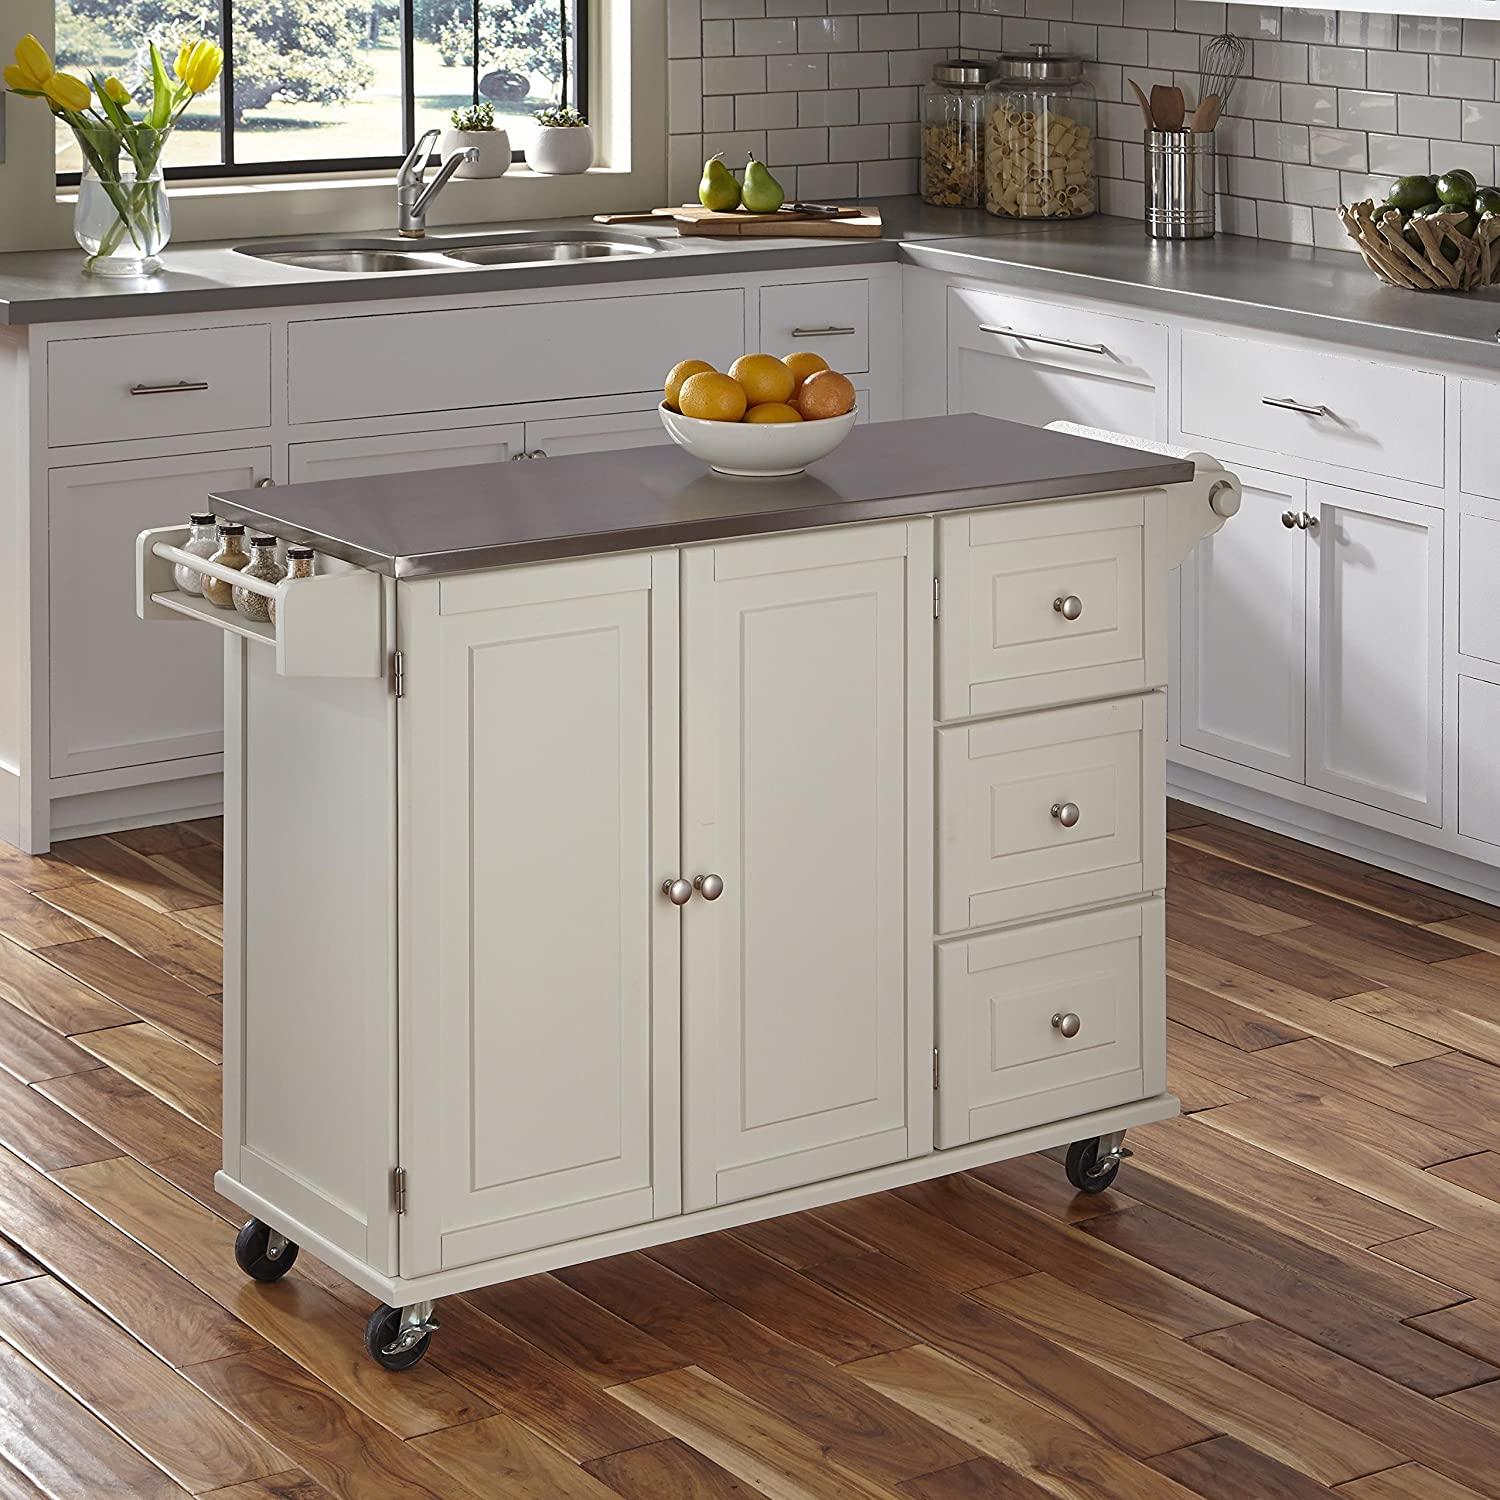 amazon com  home styles 4512 95 liberty kitchen cart with stainless steel top white  kitchen  u0026 dining amazon com  home styles 4512 95 liberty kitchen cart with      rh   amazon com